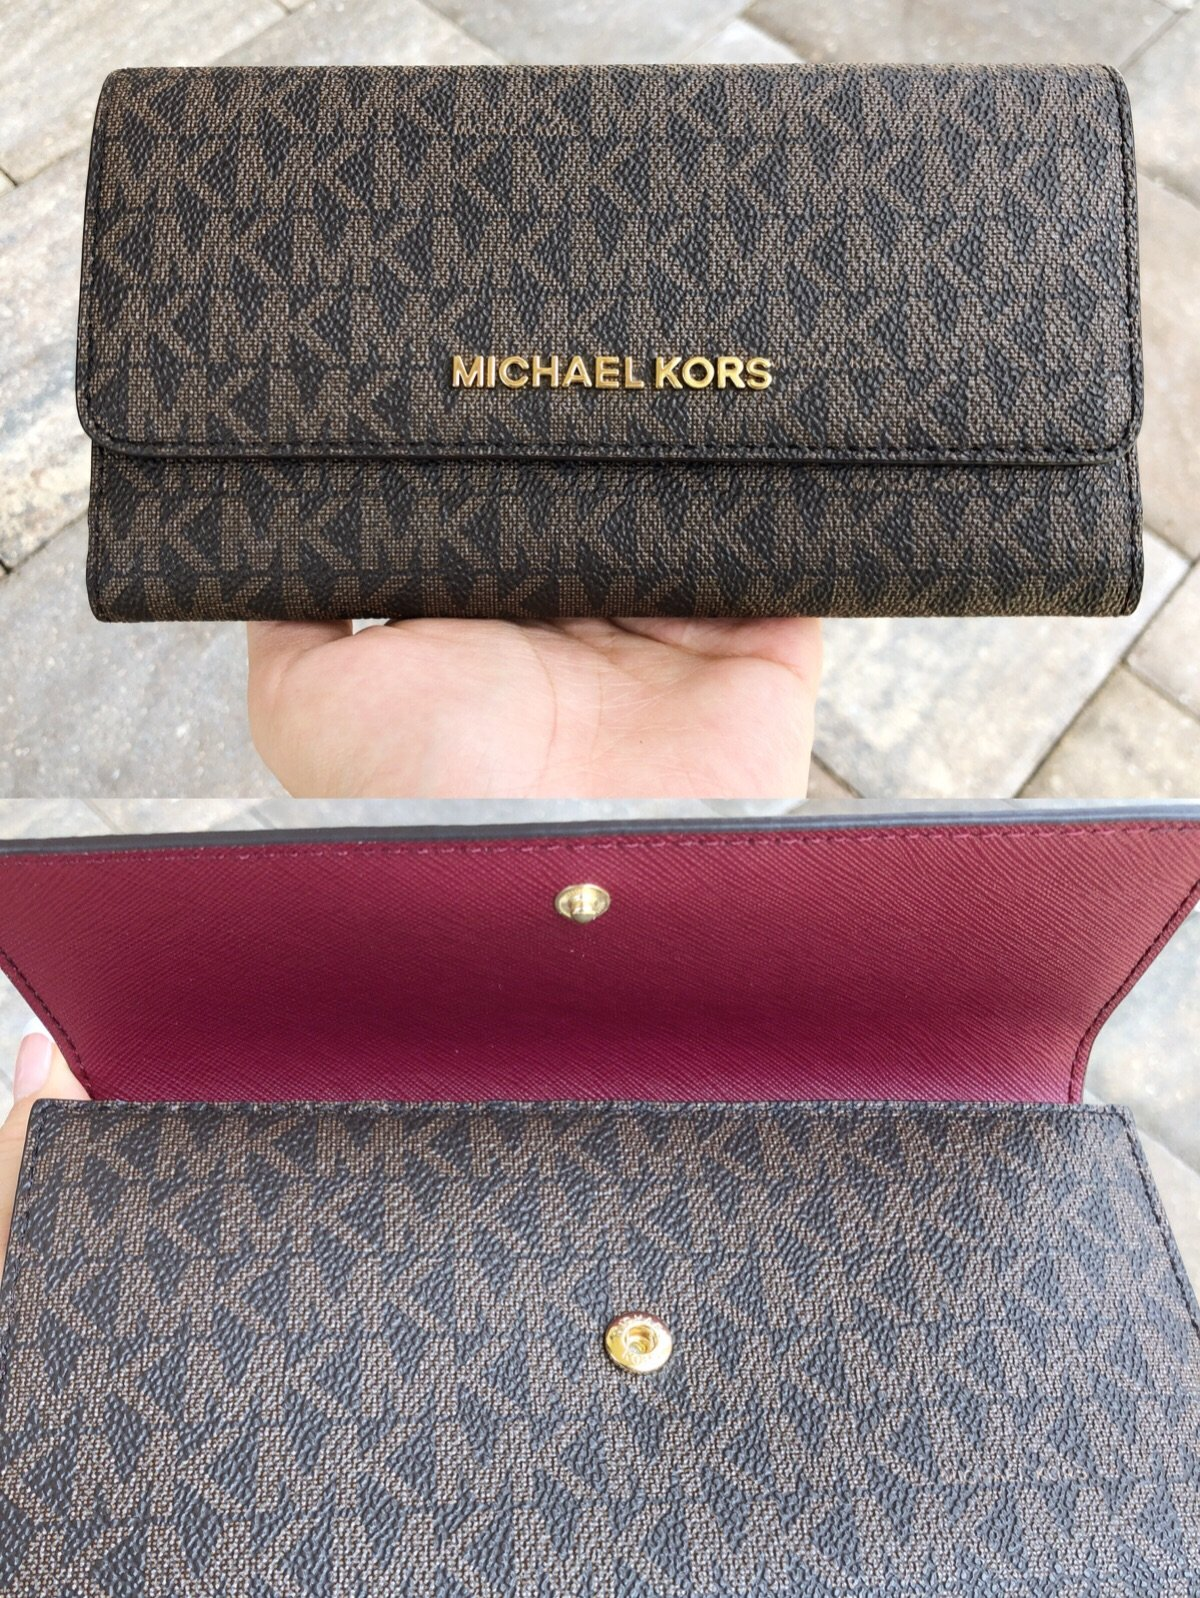 da03bc3a3333a Michael Kors Jet Set Travel PVC Large Trifold Wallet Brown MK Signature  Mulberry